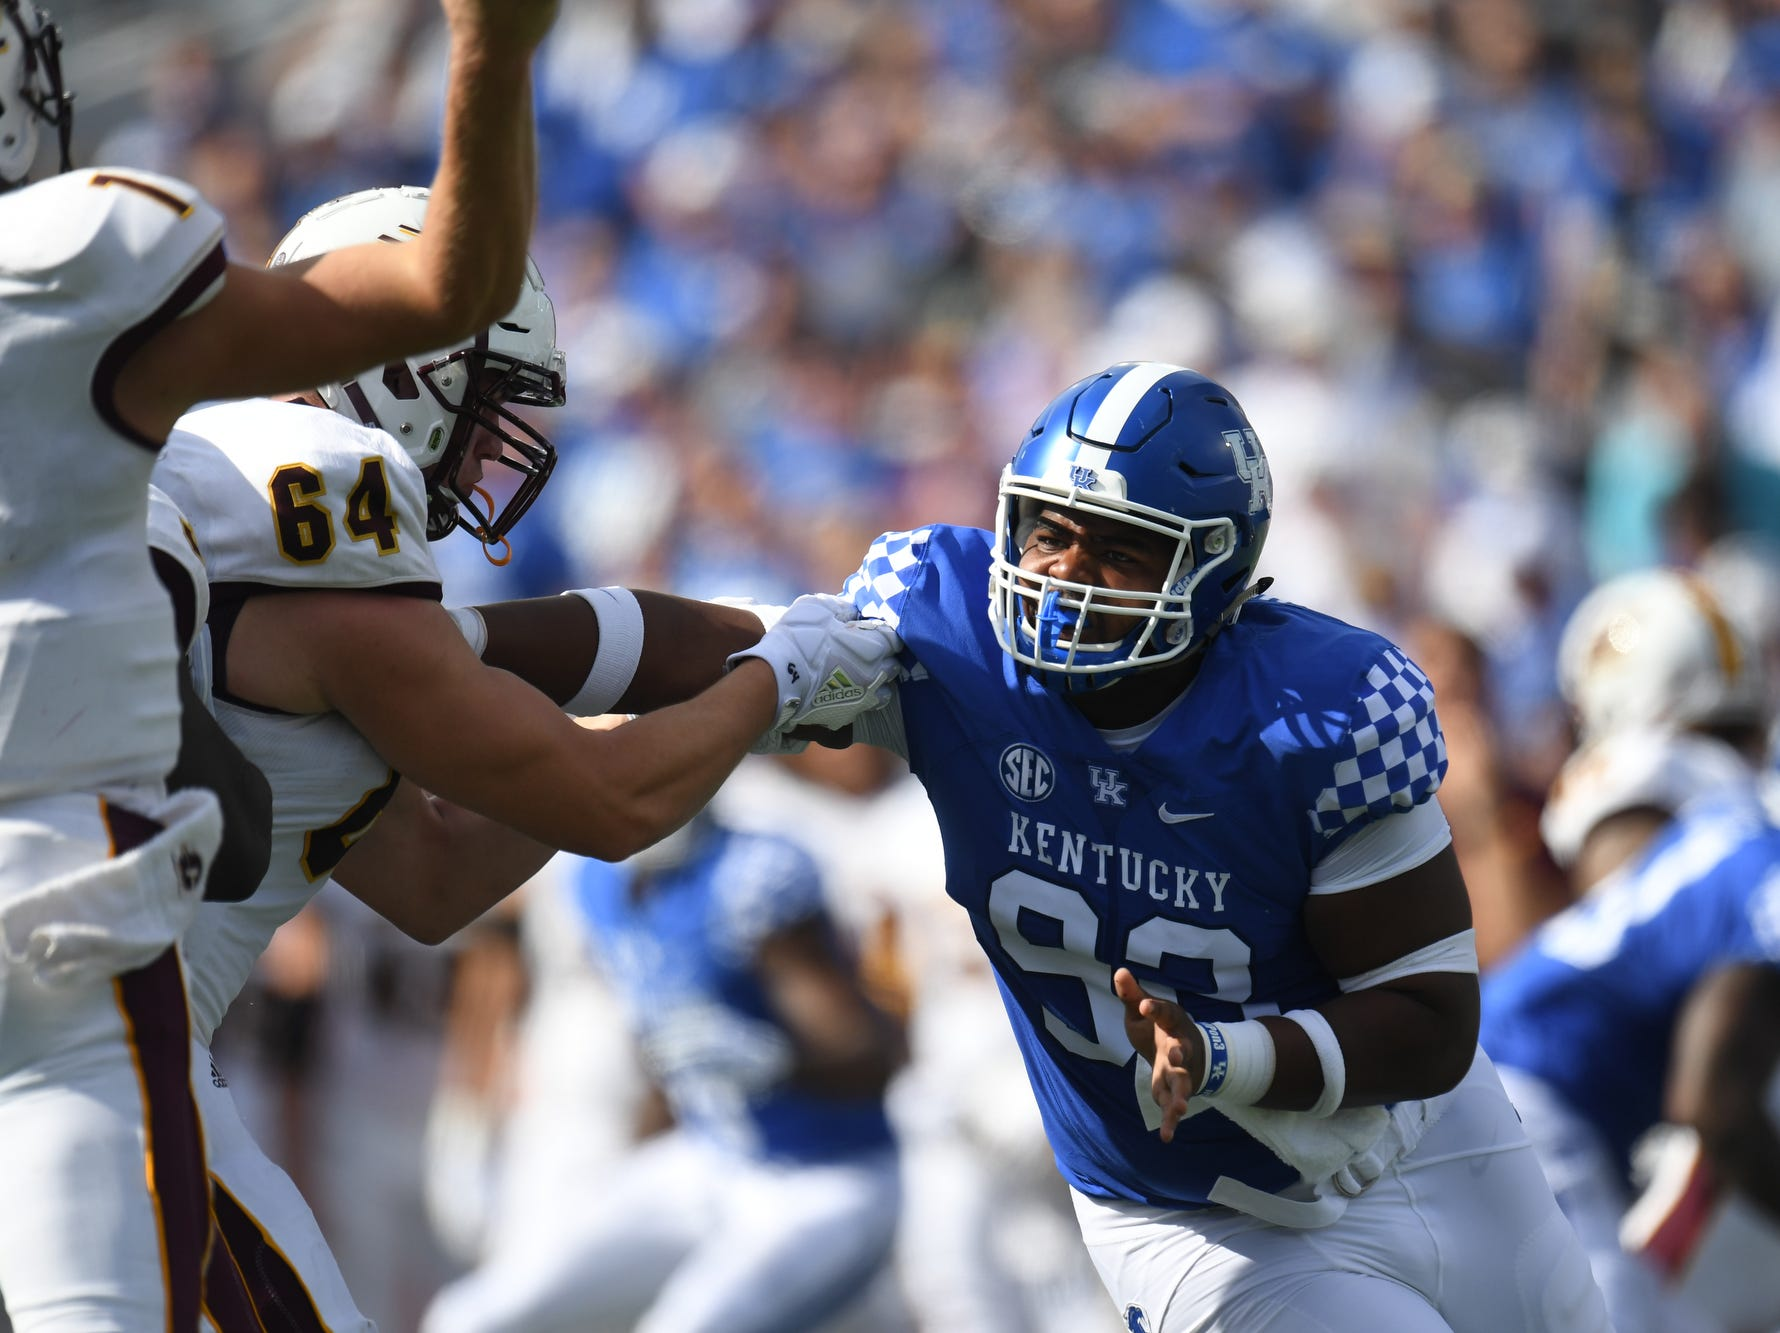 UK DT Phil Hoskins during the University of Kentucky football game against Central Michigan at Kroger Field in Lexington, Kentucky on Saturday, September 1, 2018.